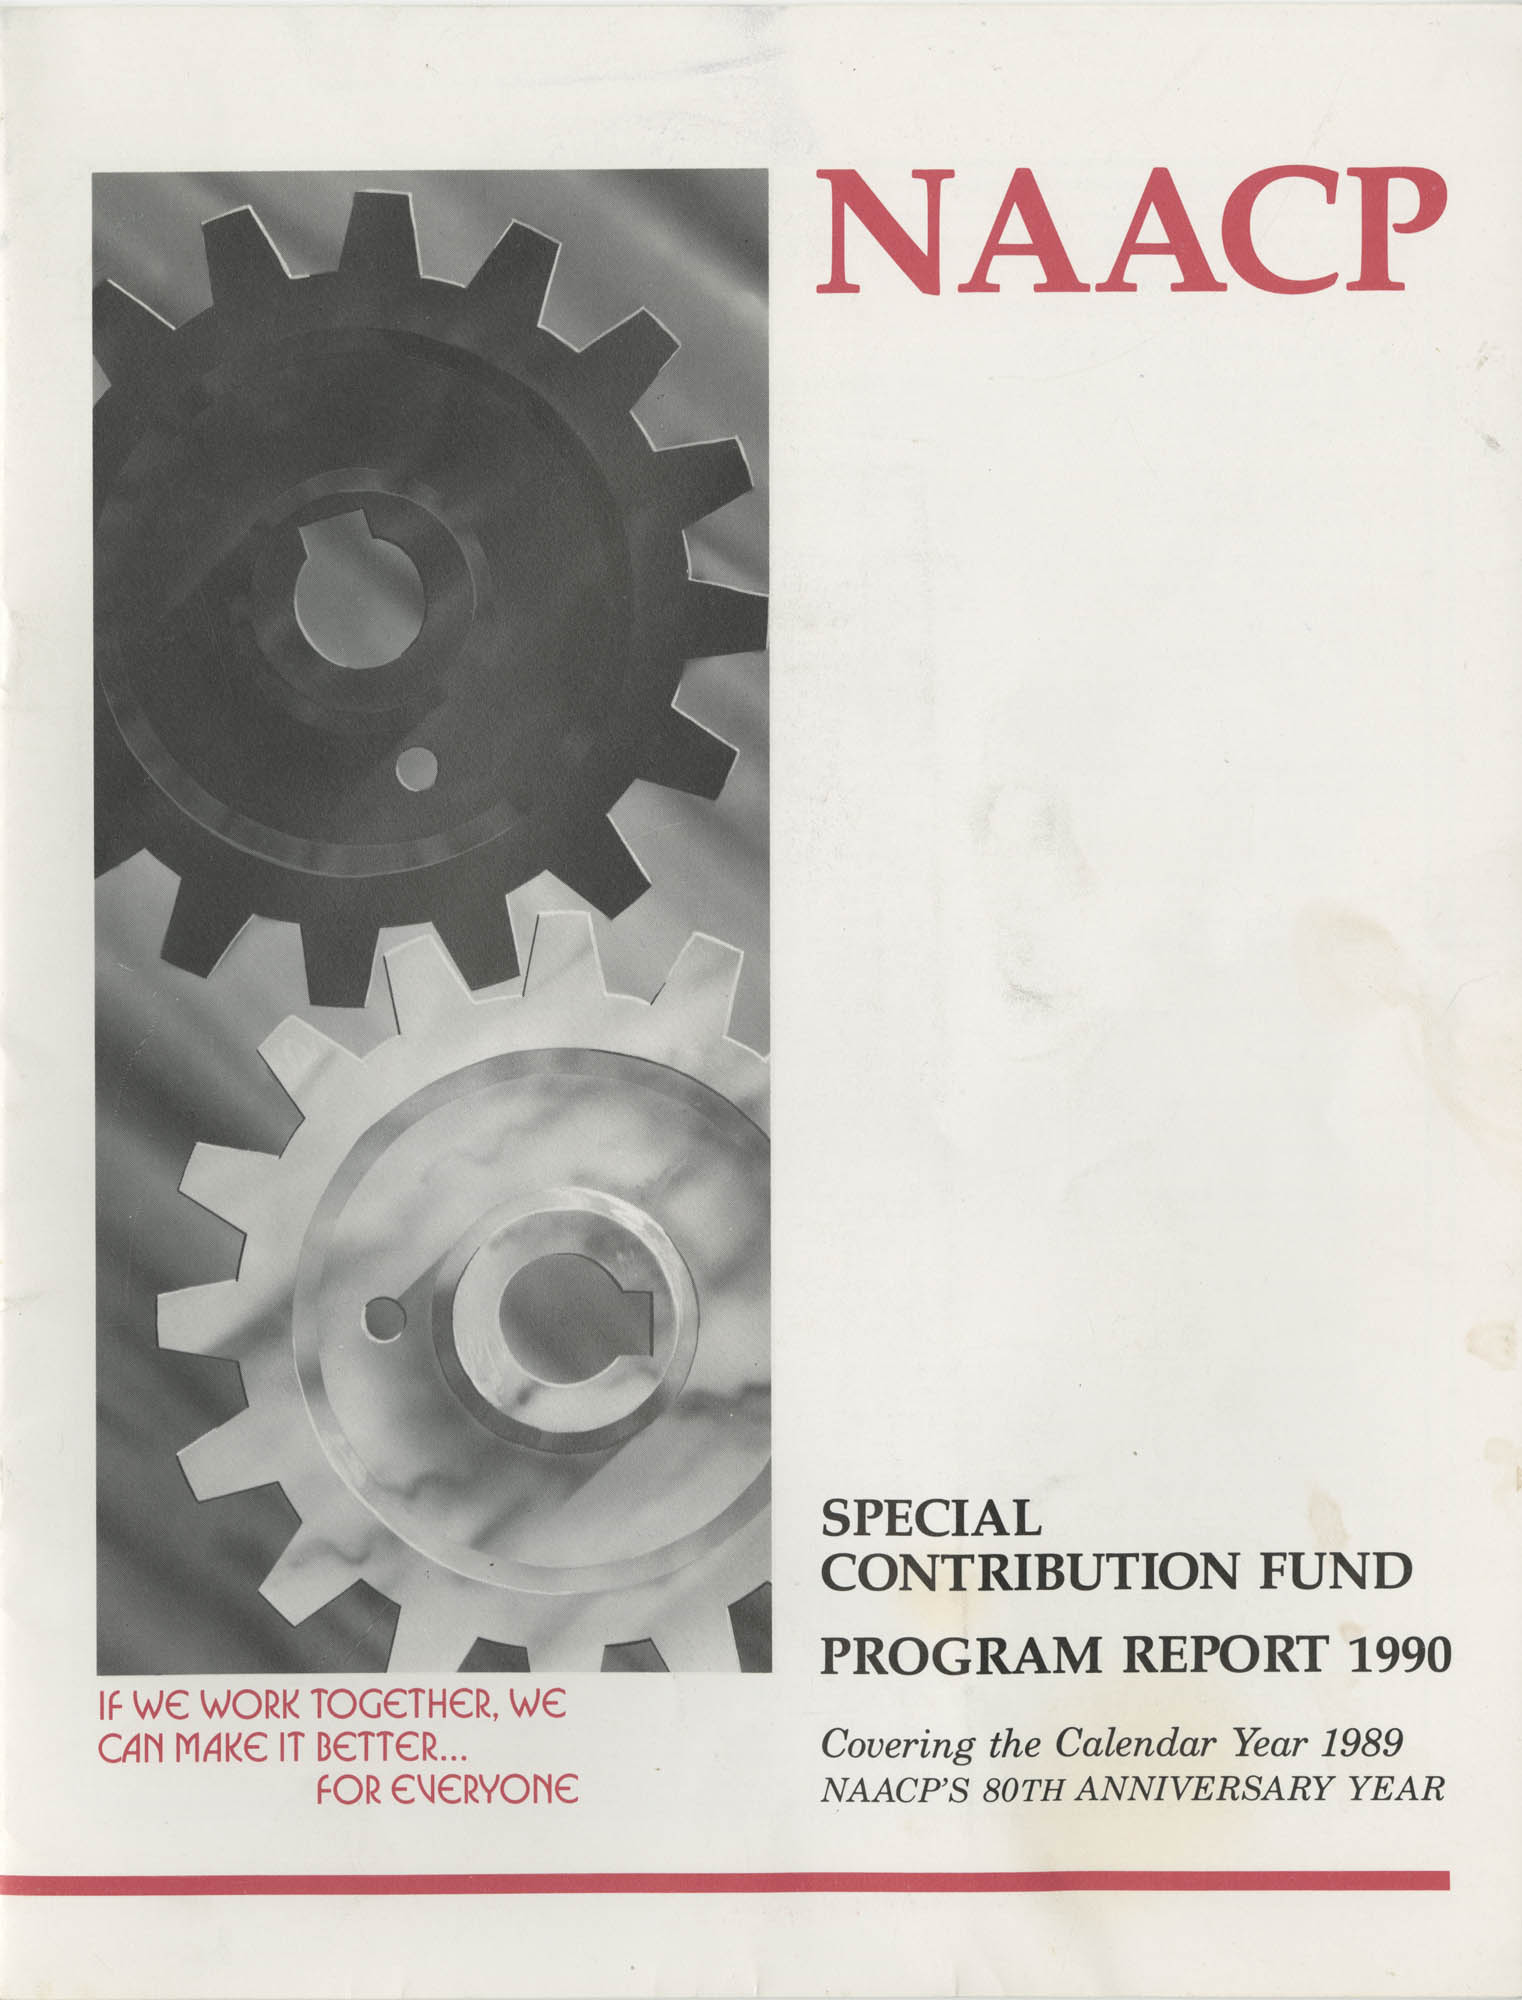 Program Report 1990, Special Contribution Fund, NAACP